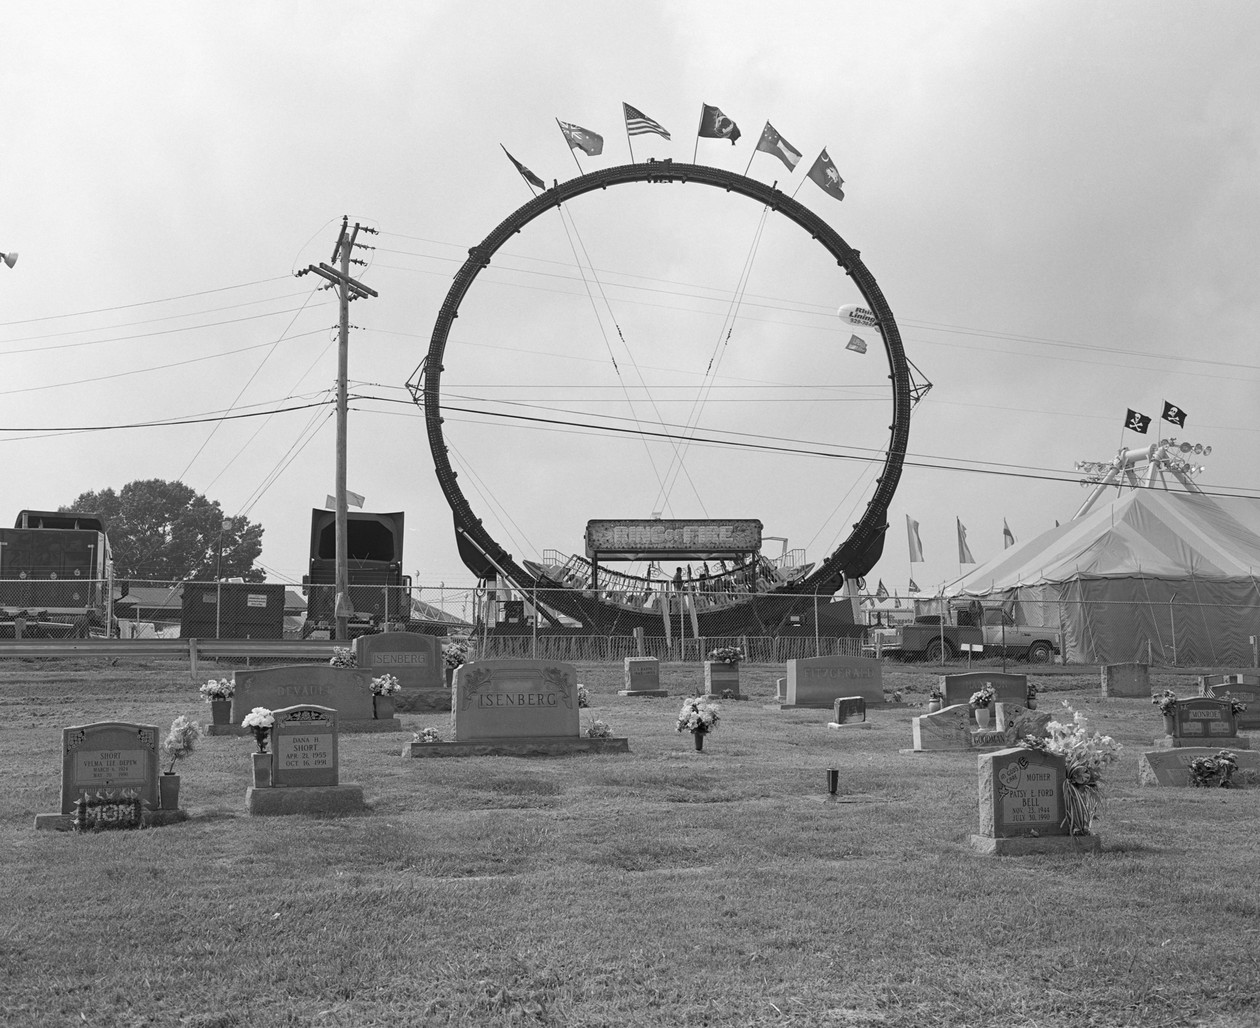 Untitled (ring of fire), from Carnival (2001) by Mark Steinmetz